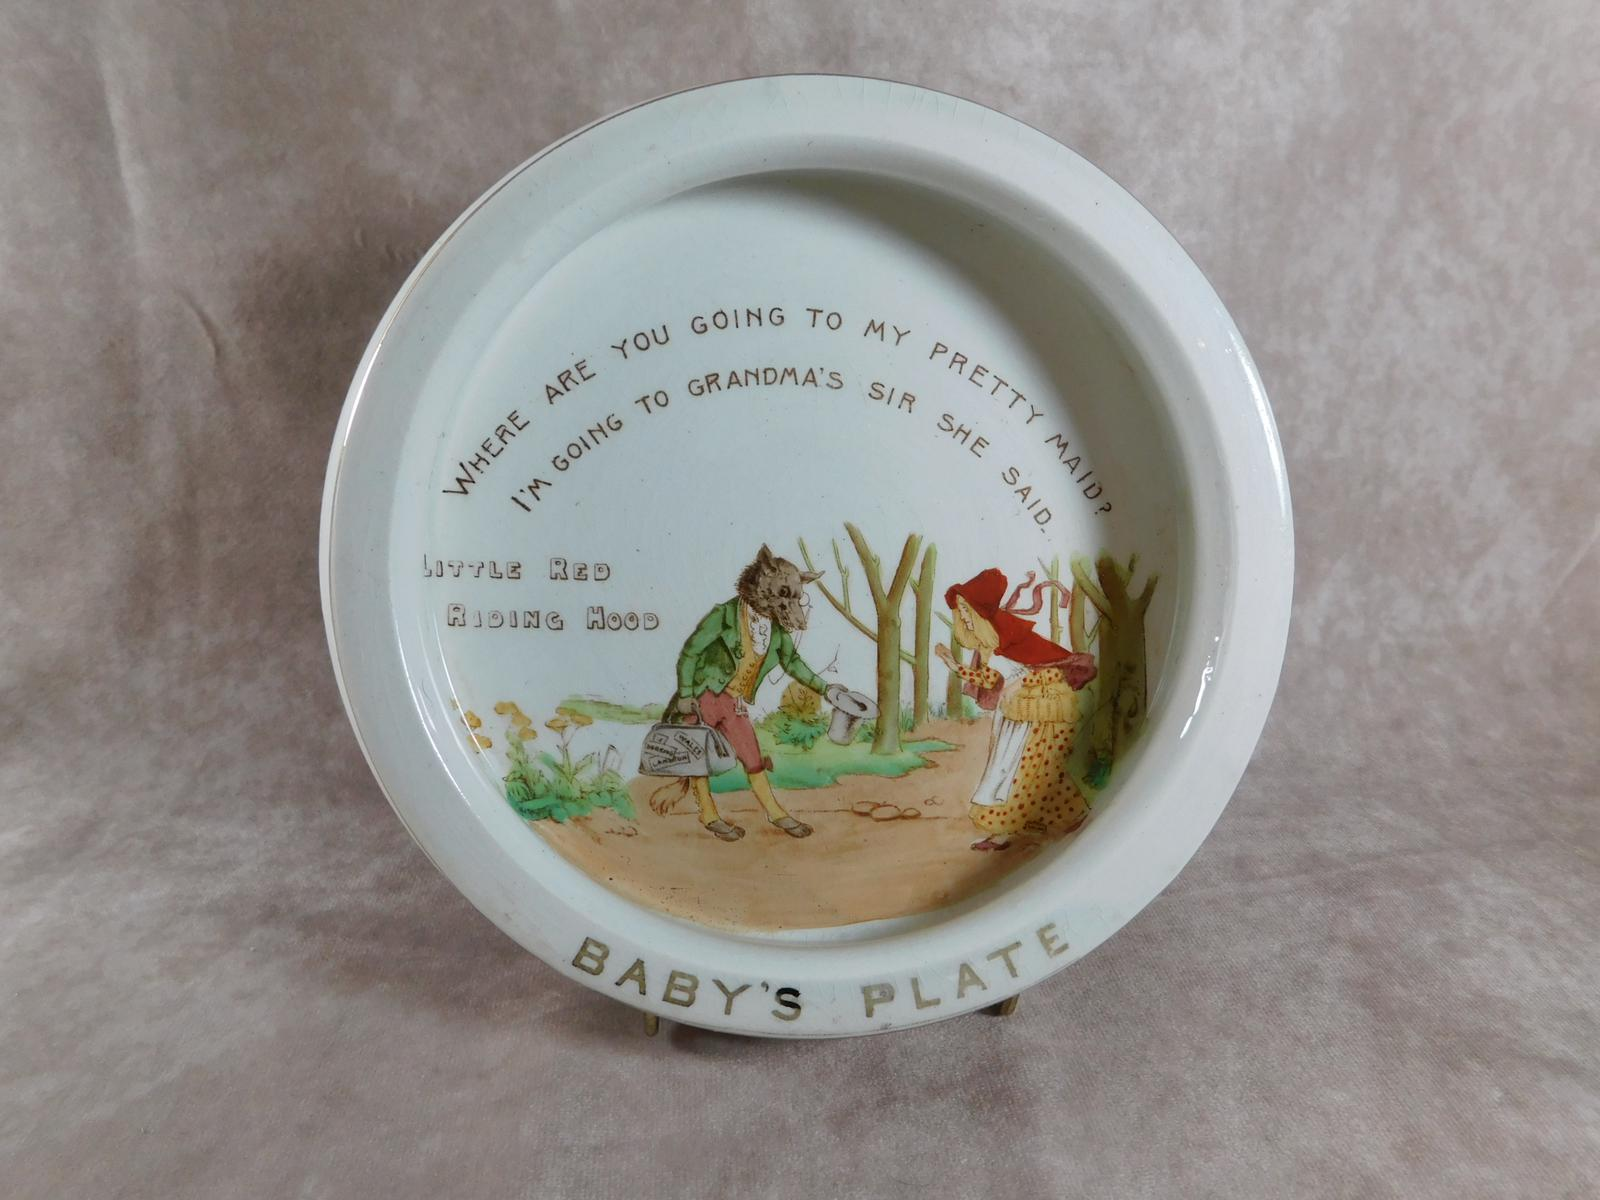 Little Red Riding Hood Babies Plate by Shelley (1 of 1)